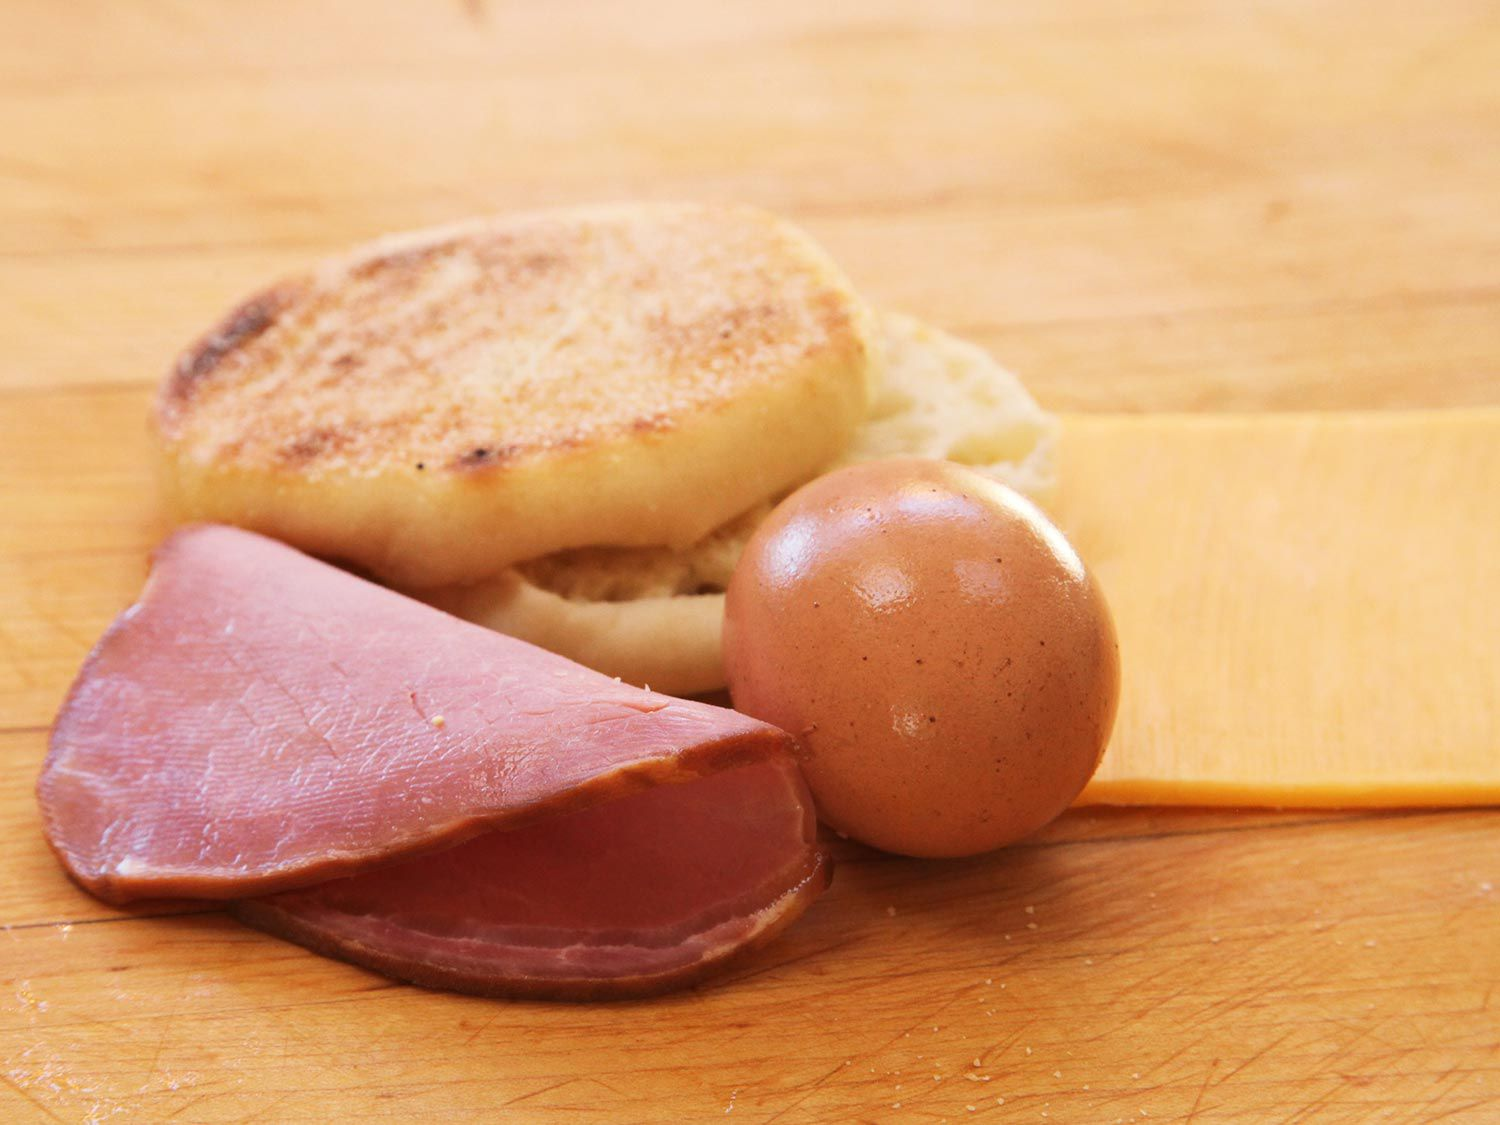 Copycat Egg McMuffin ingredients: an English muffin, Canadian bacon and an egg